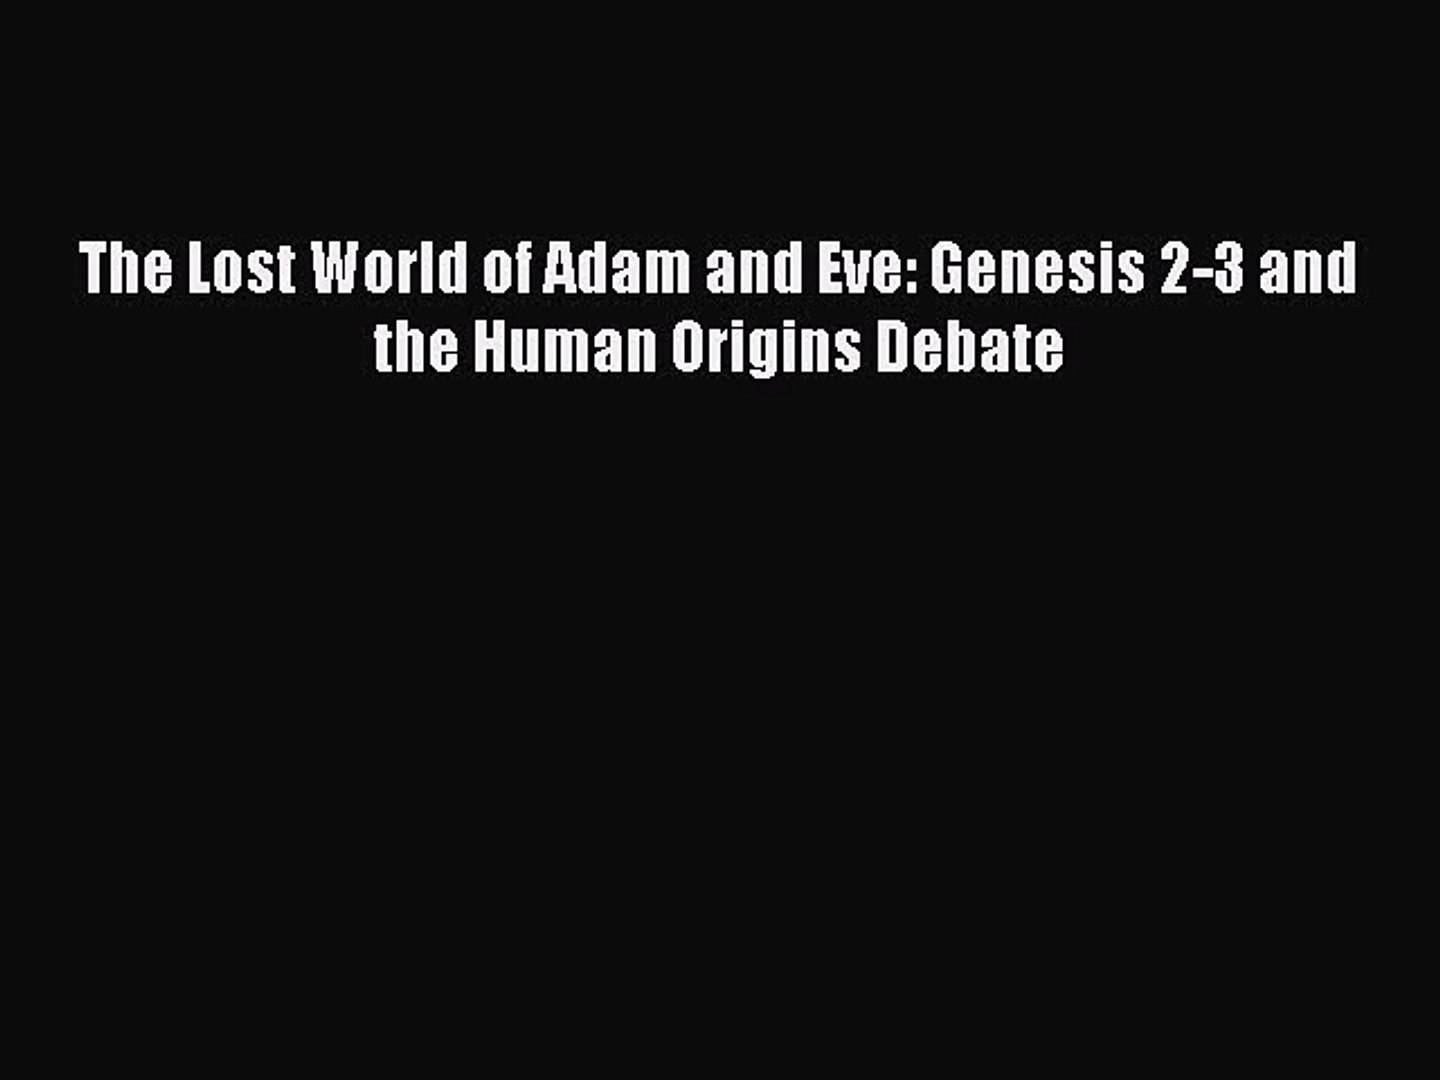 Pdf Download The Lost World Of Adam And Eve Genesis 2 3 And The Human Origins Debate Read Video Dailymotion